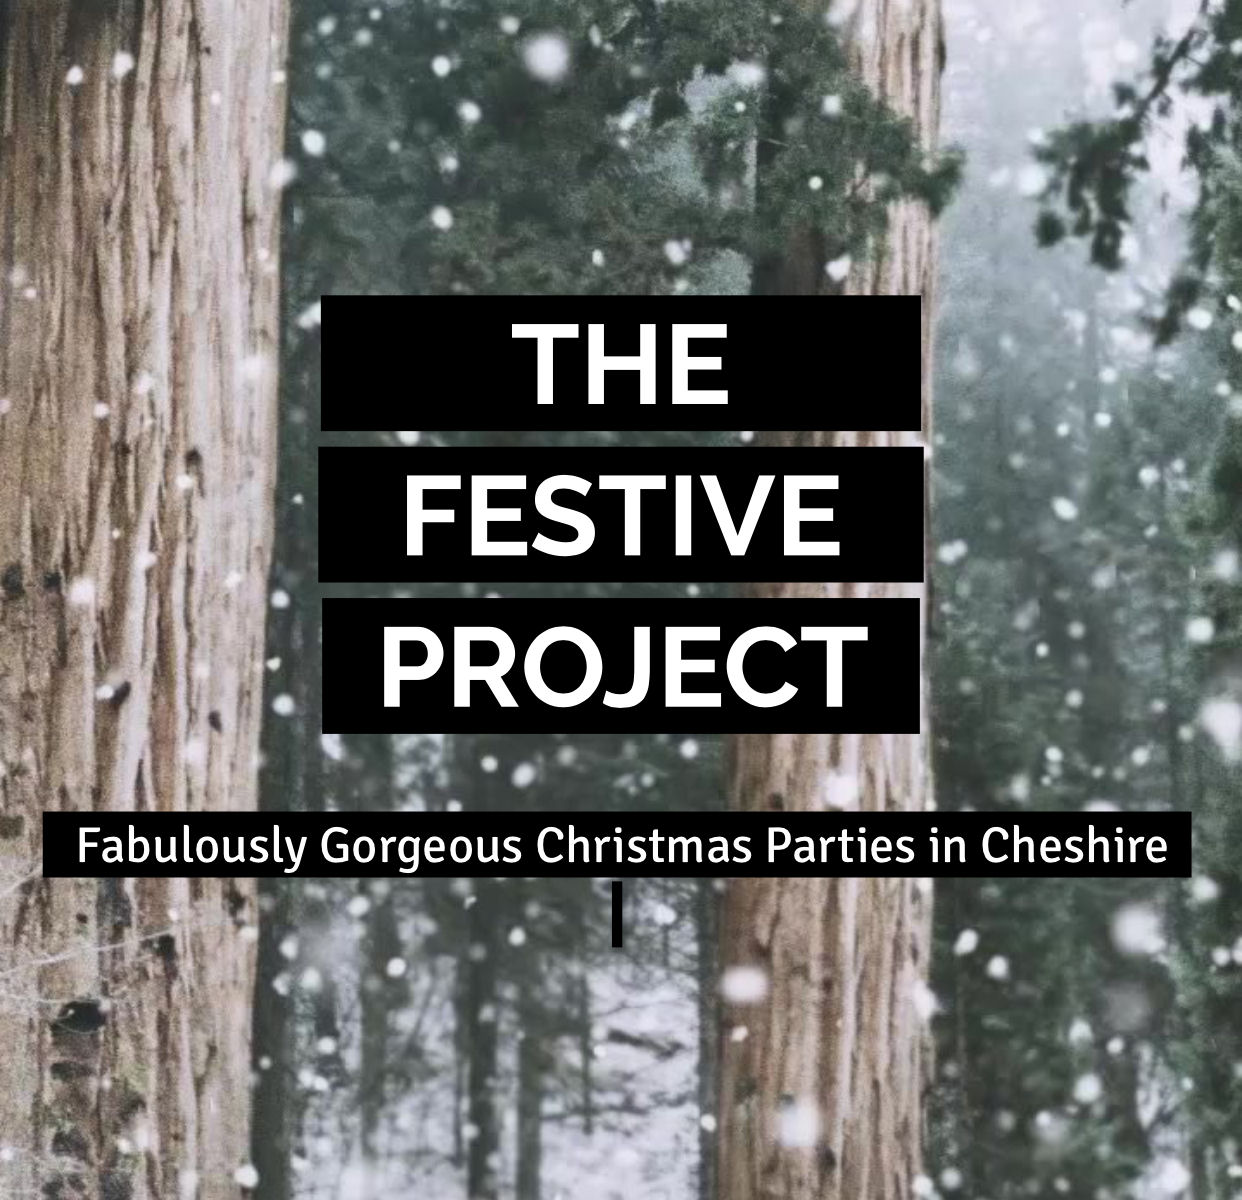 The Festive Project - Friday 15th December